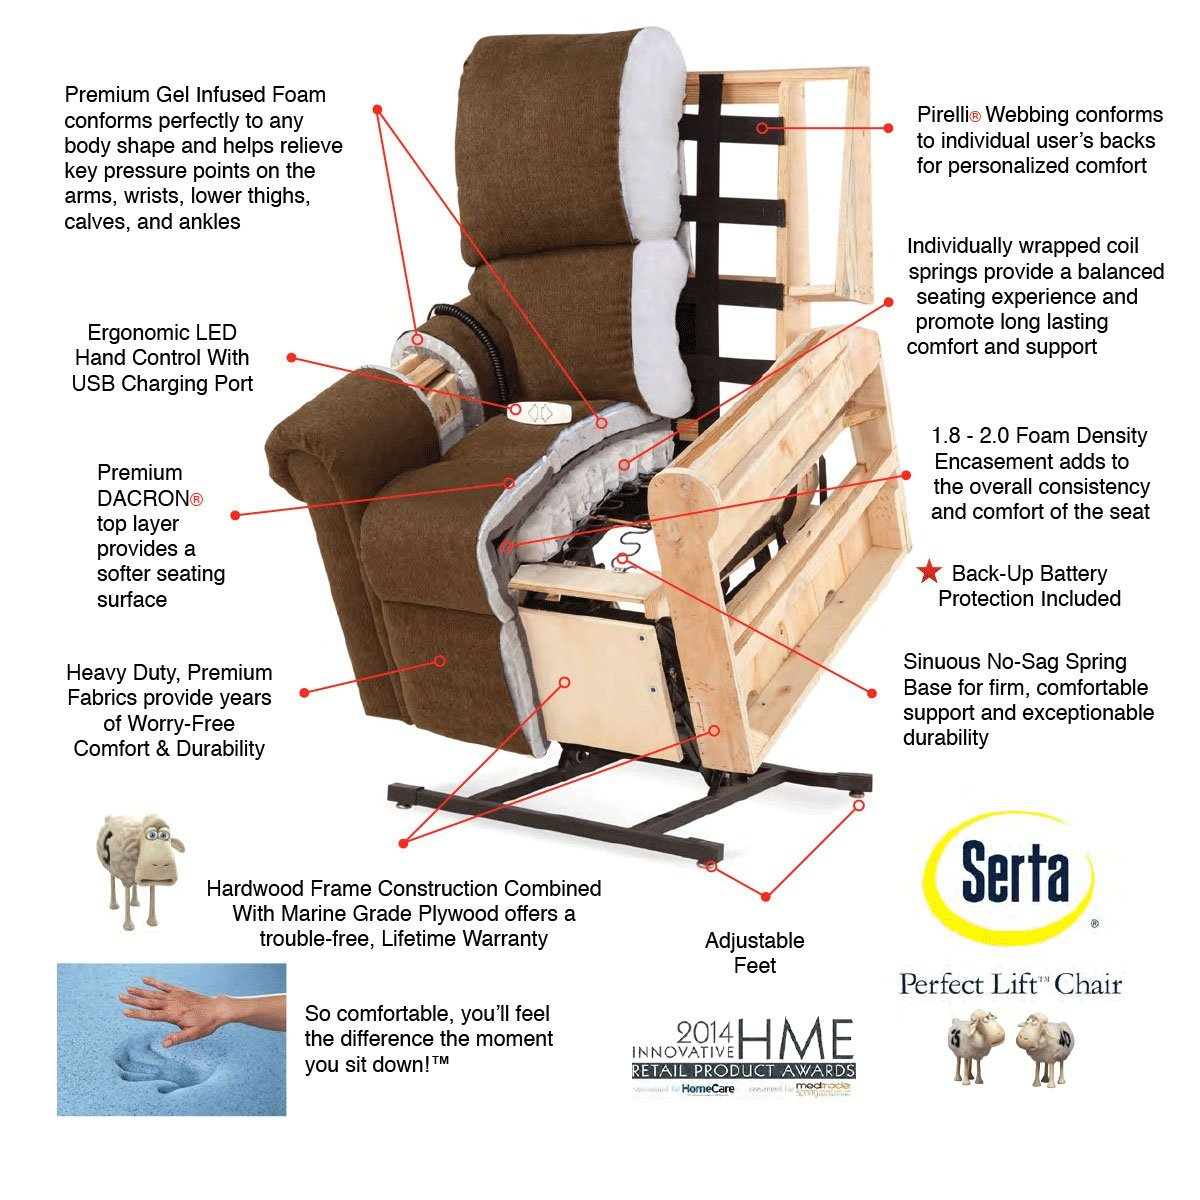 serta perfect lift chair plush comfort recliner w gelinfused foam relieves key body pressure points